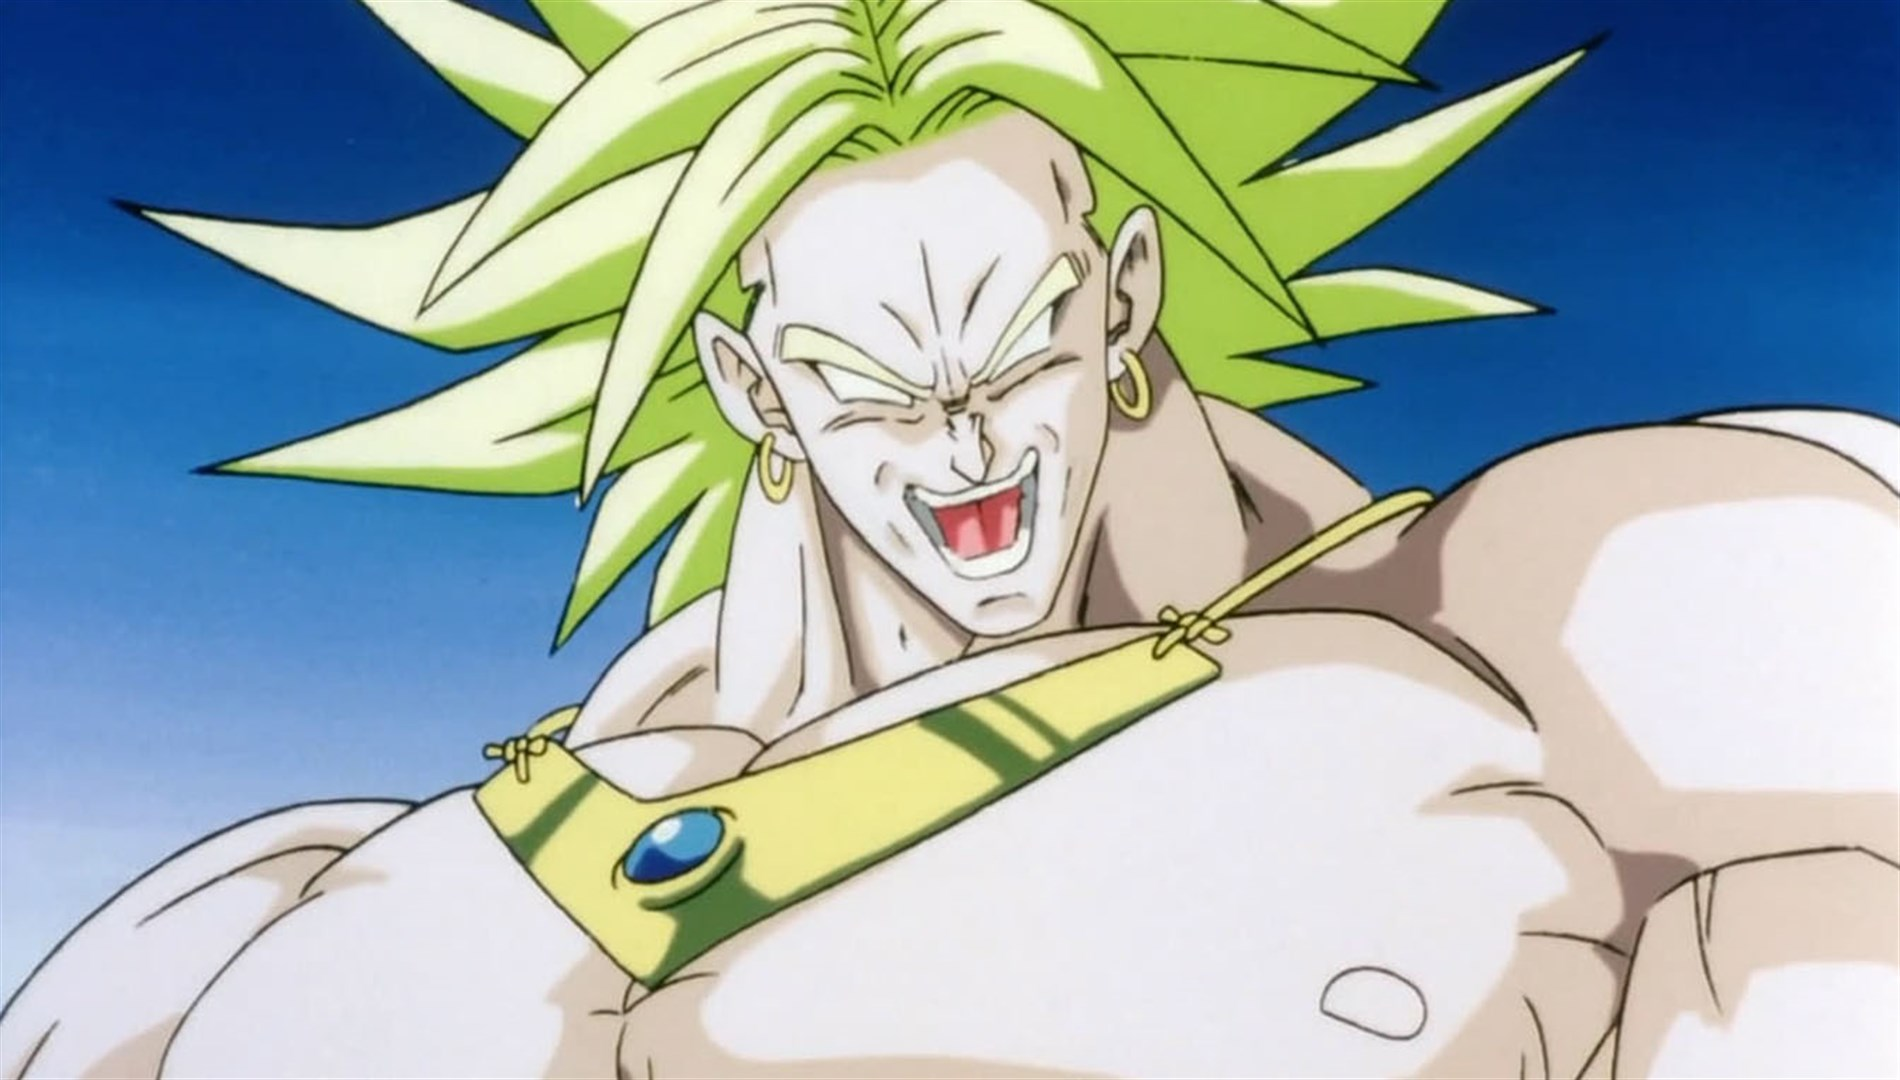 Broly who is thick with muscle and sinisterly.